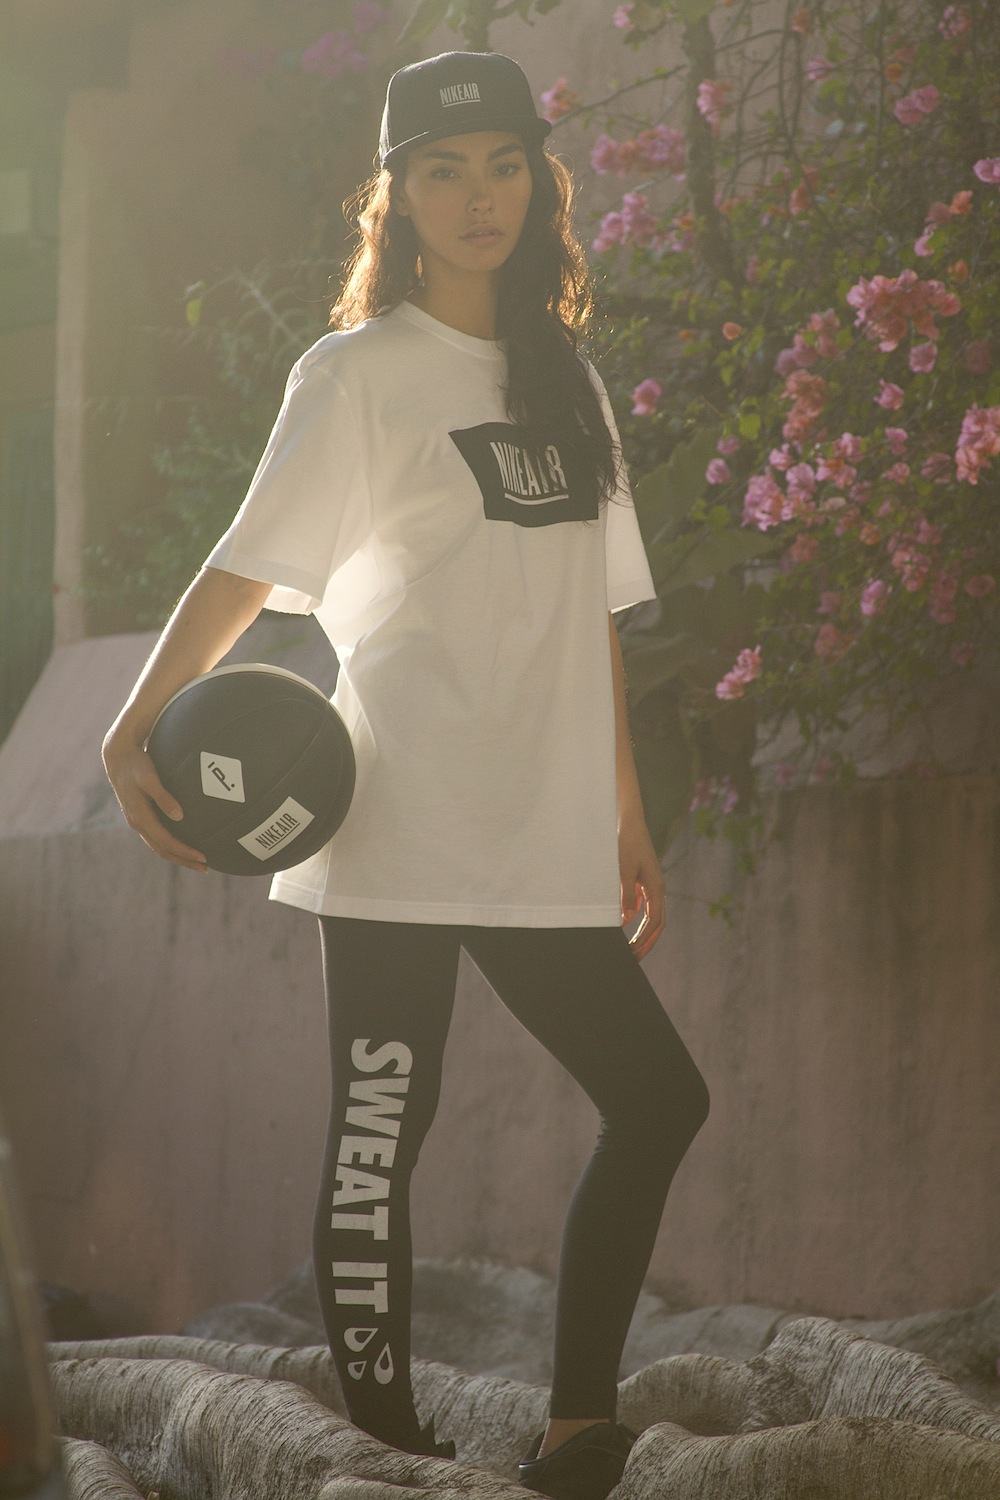 You searched for Sneakers: NIke - SWEAT THE STYLE